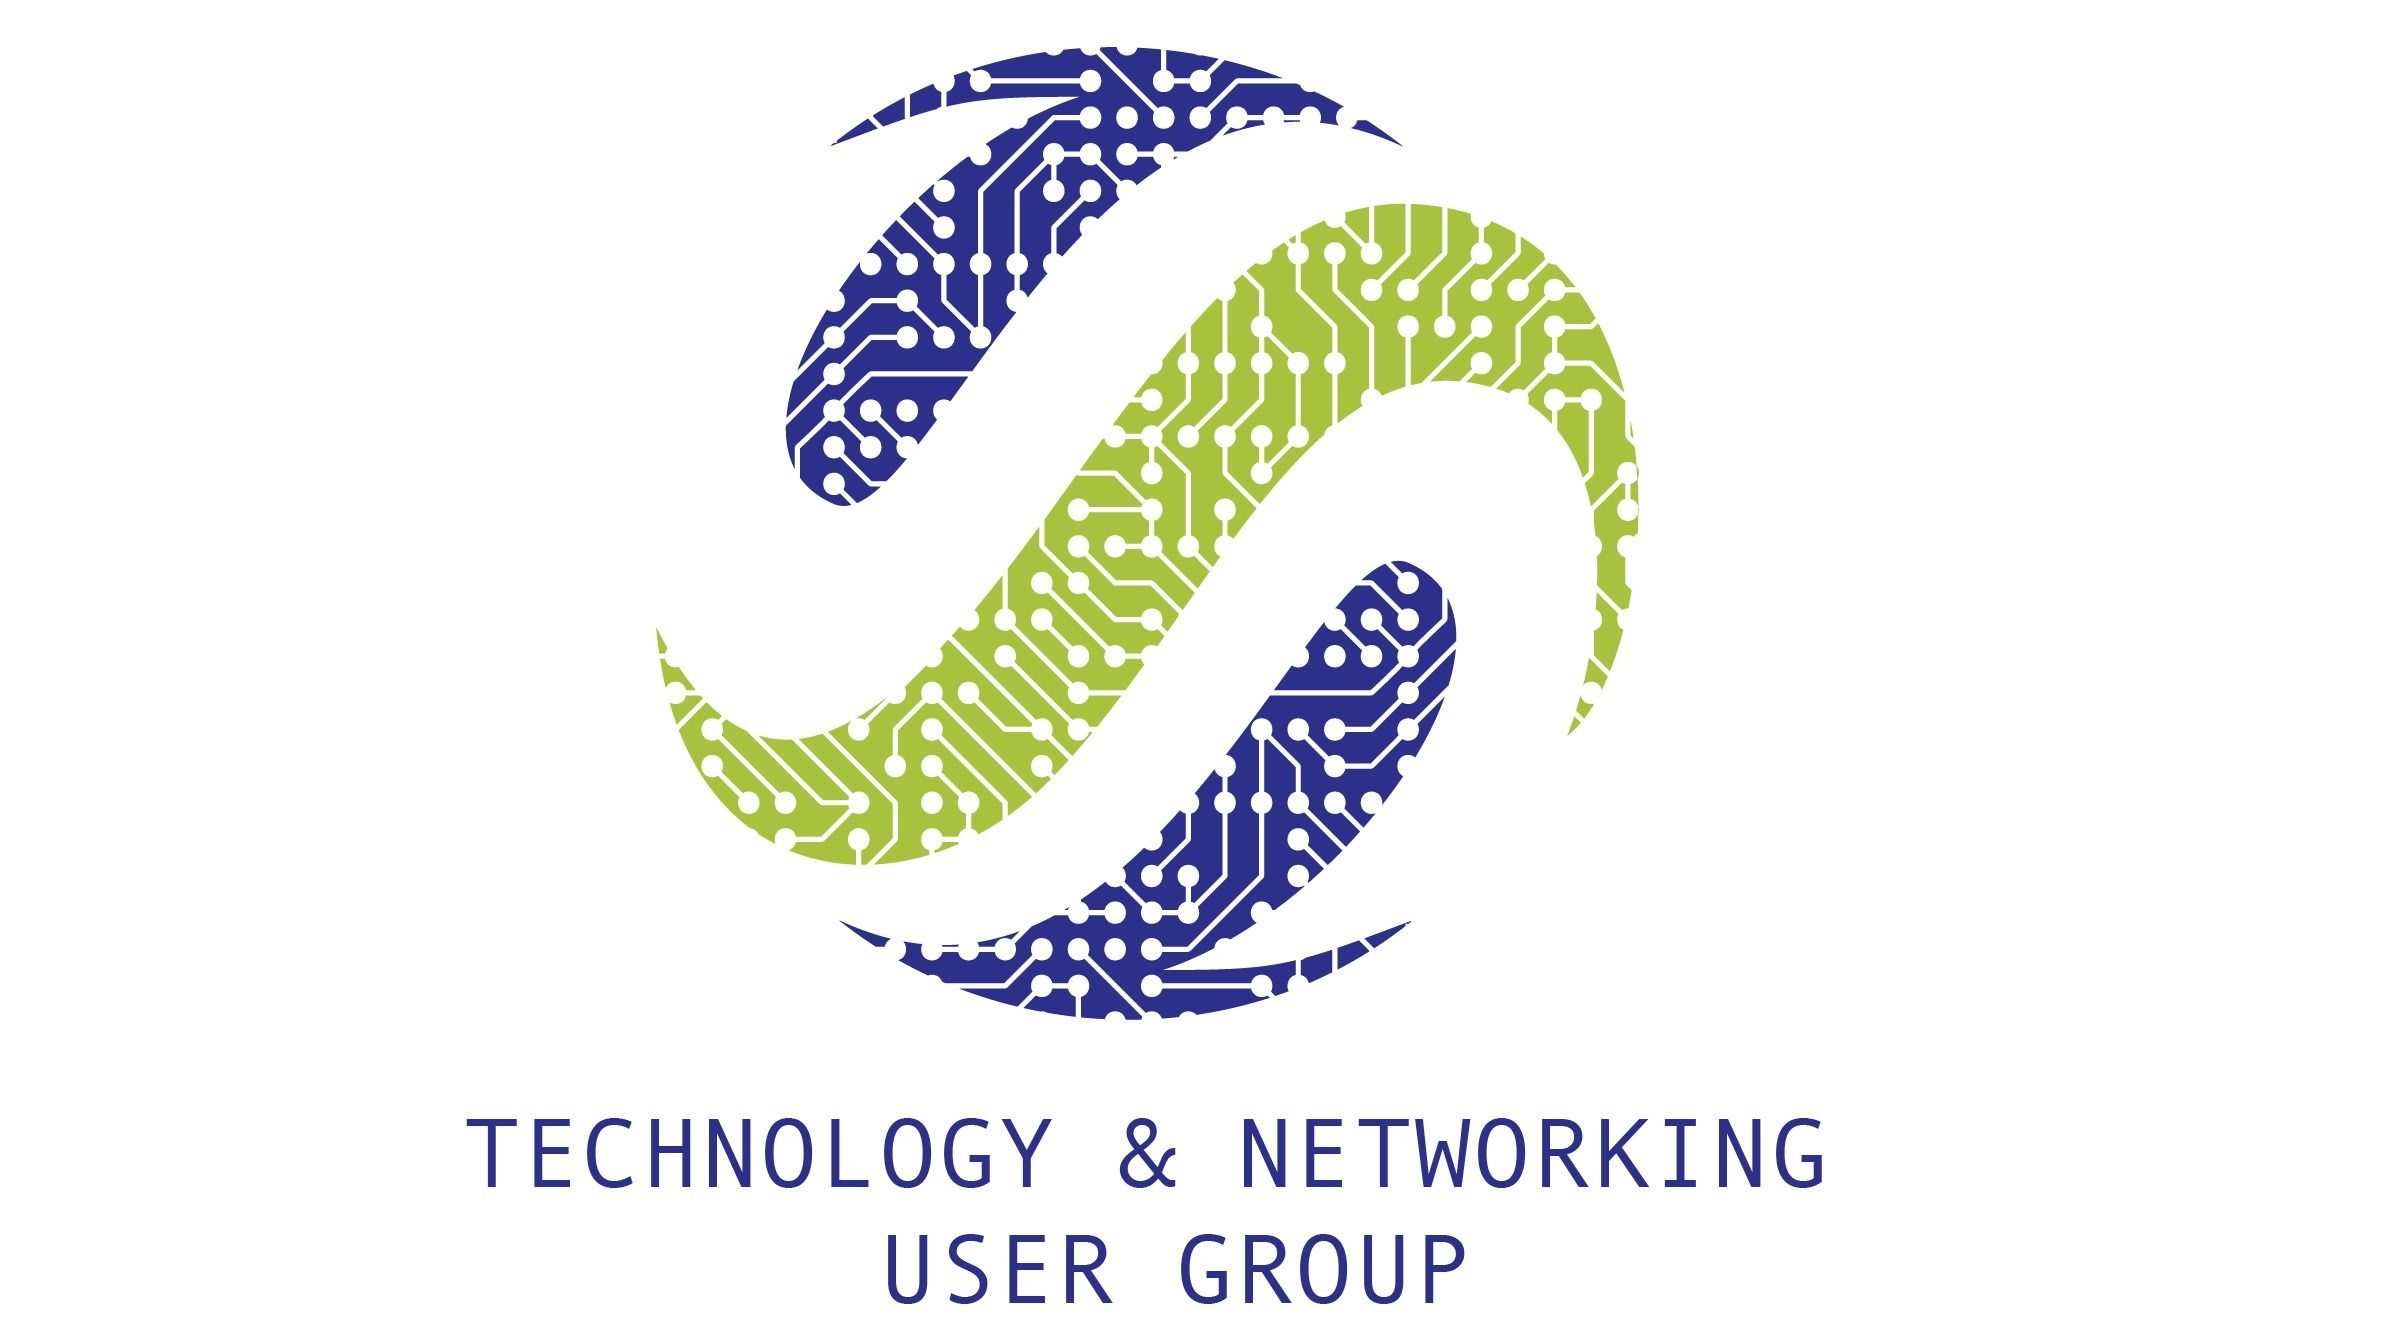 Technology & Networking User Group